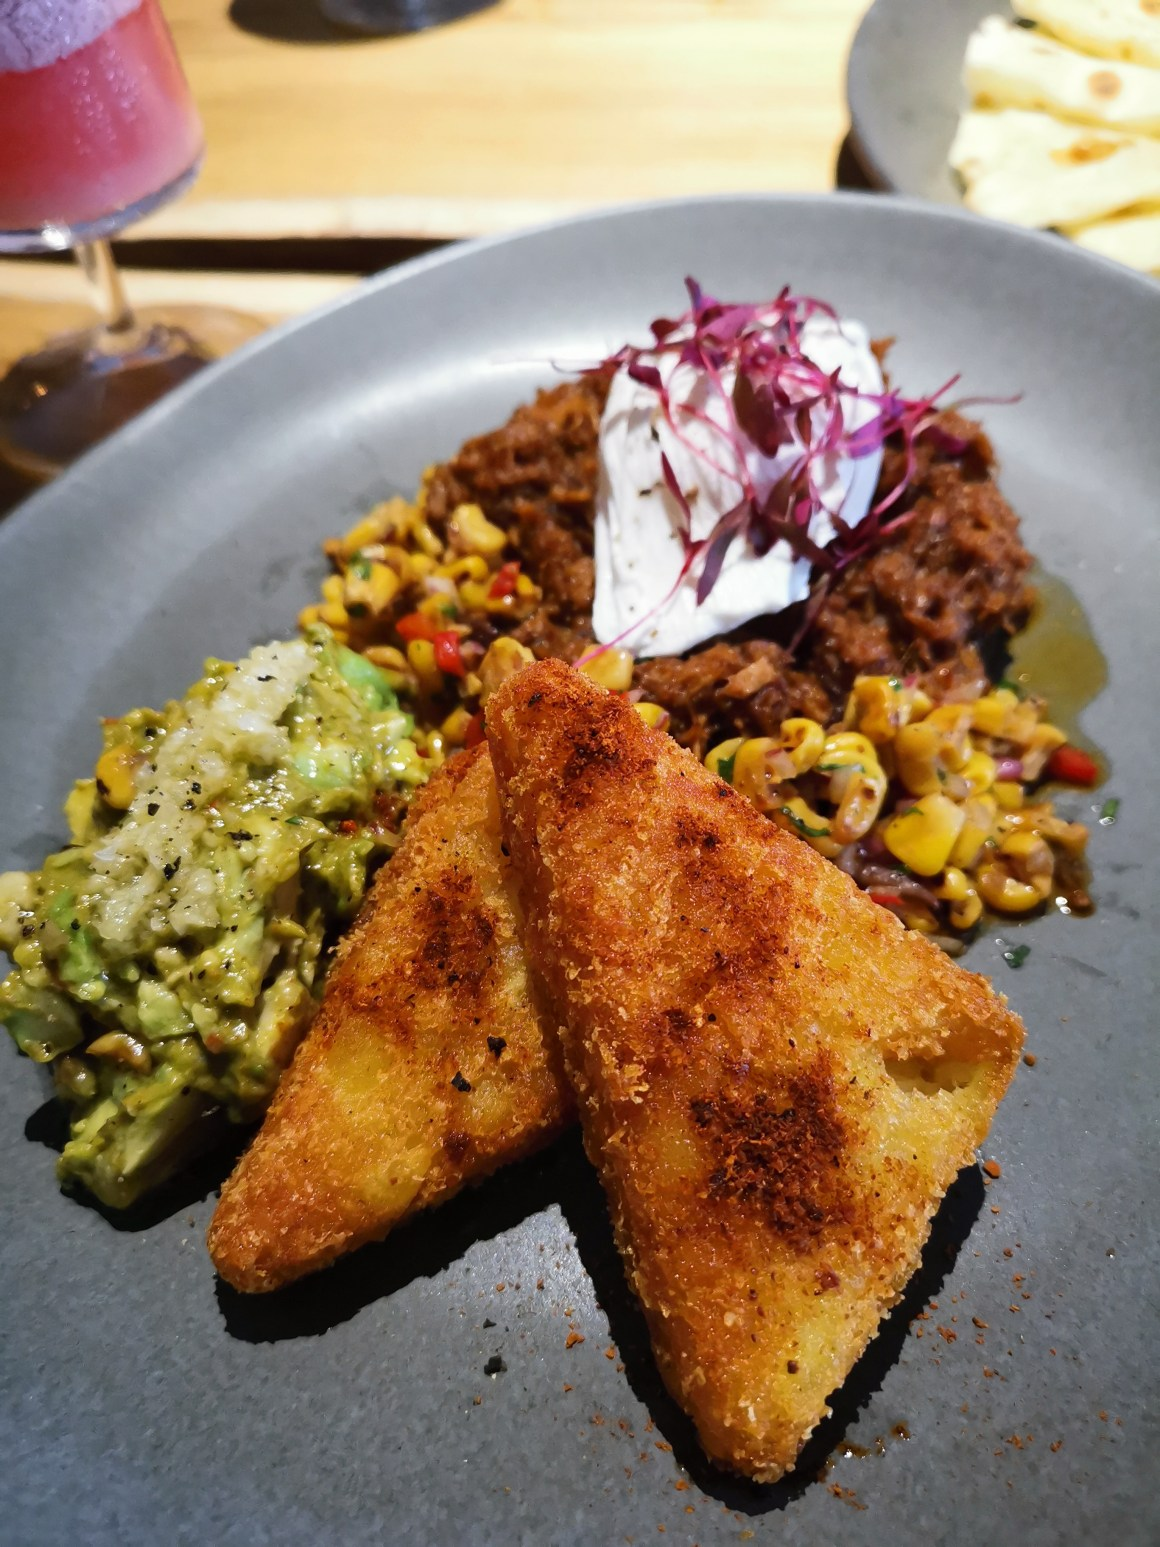 Kafe Utu, First Afro Cafe & Lounge In Singapore - Pulled Pork Breakfast ($24)